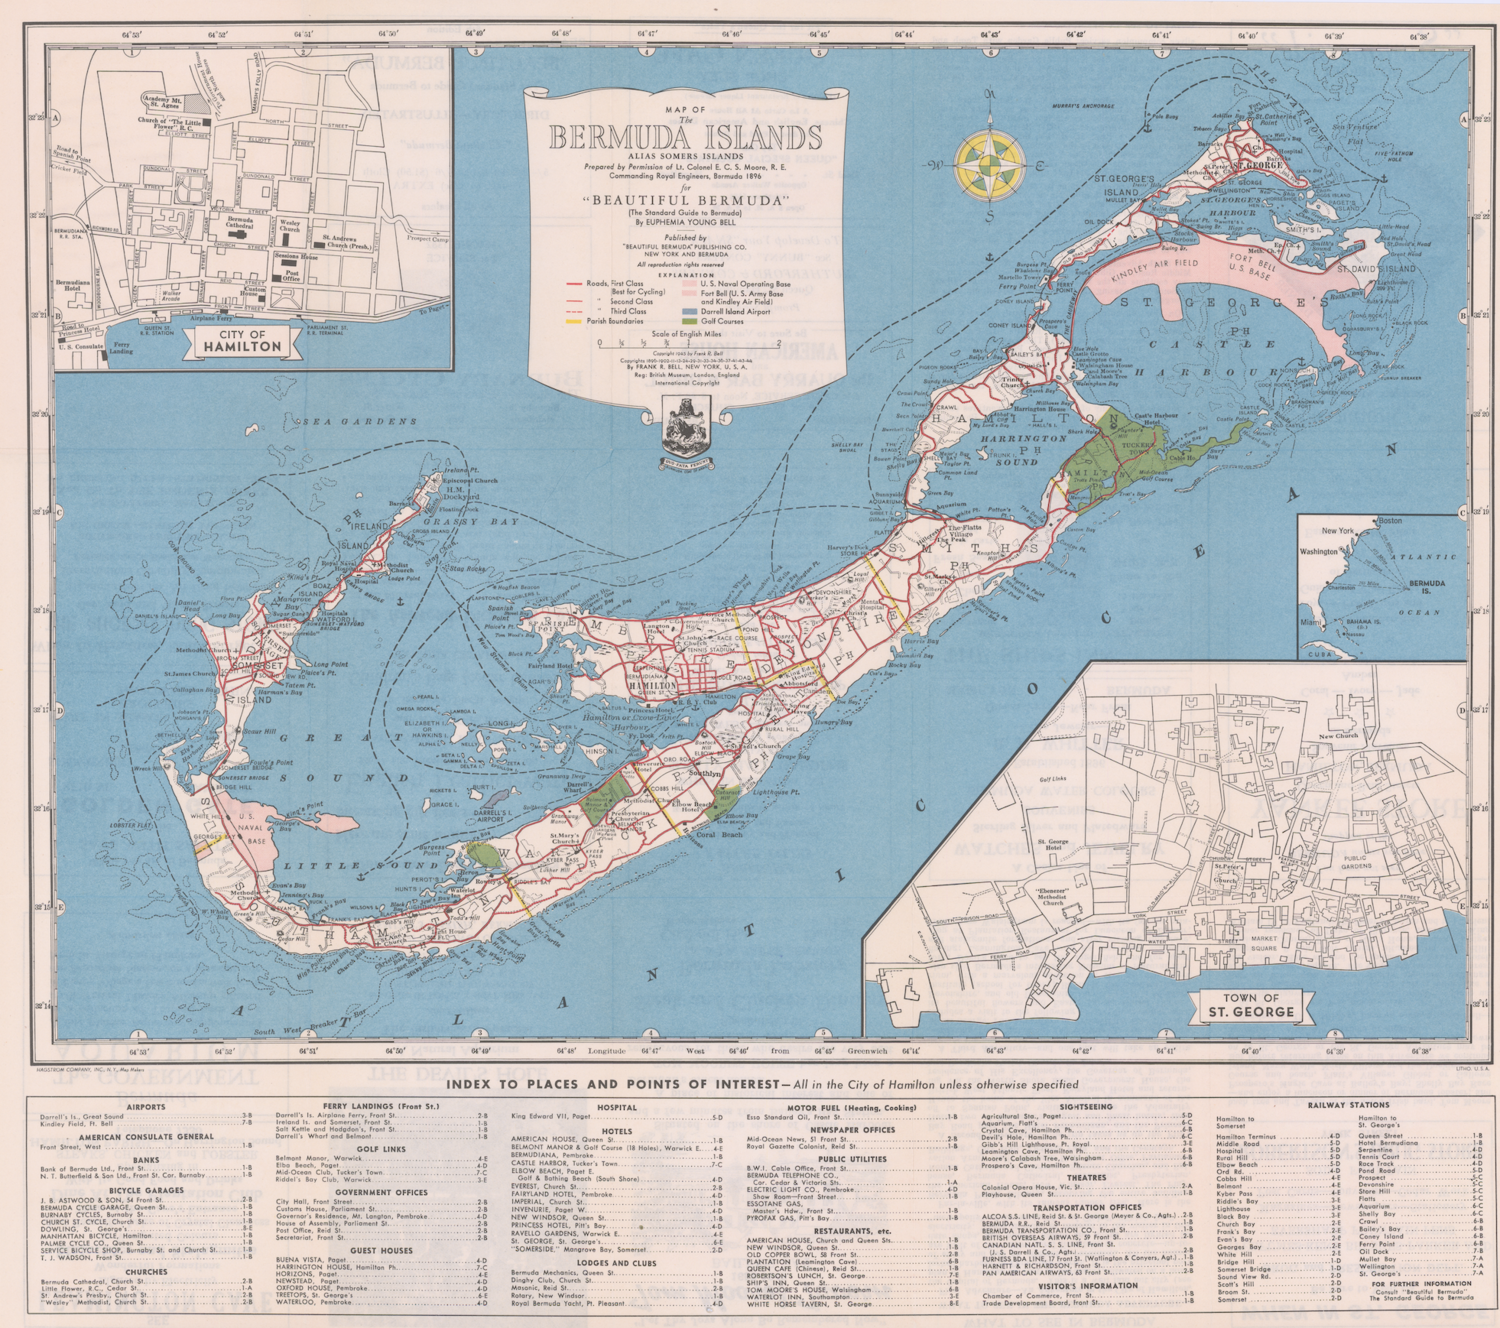 1945 Map of Bermuda Islands Alias Somers Islands Prepared by ...